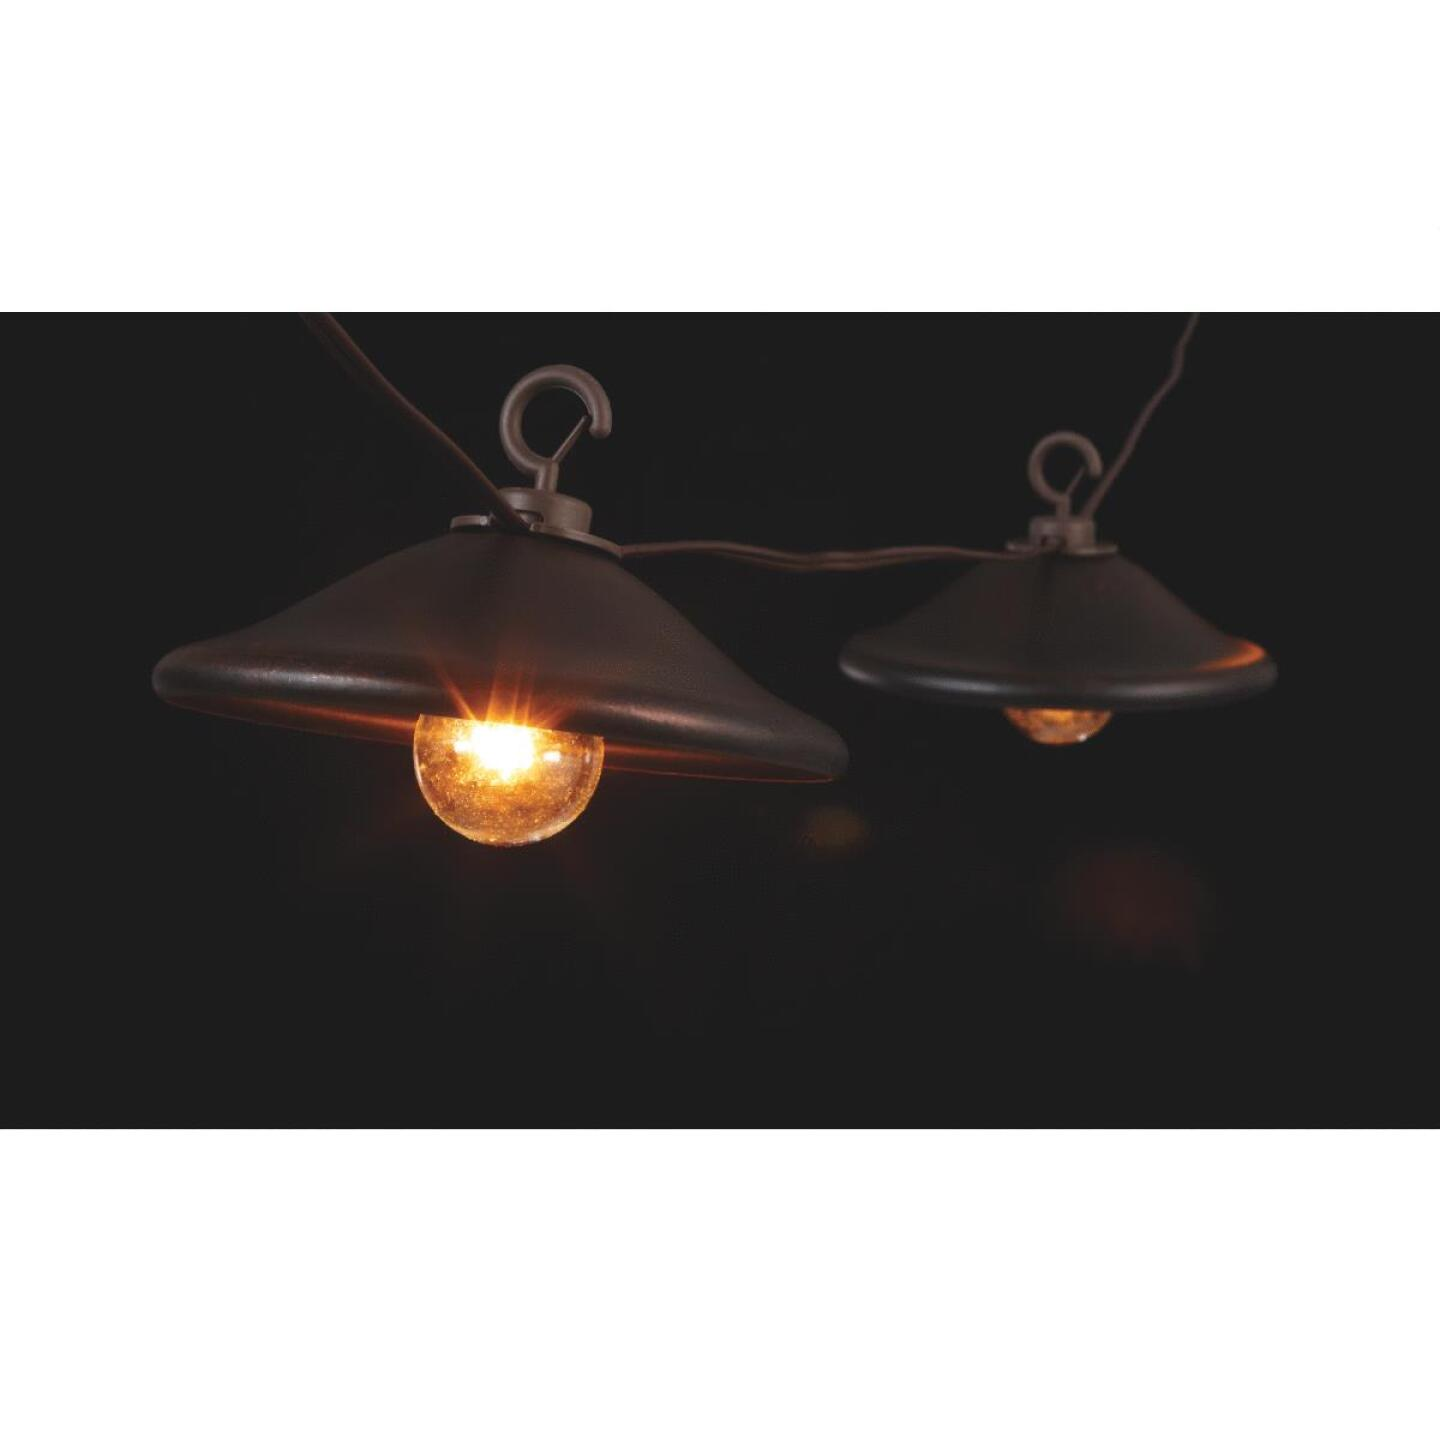 Gerson 10 Ft. 10-Light Clear Bronze Cover String Lights Image 3